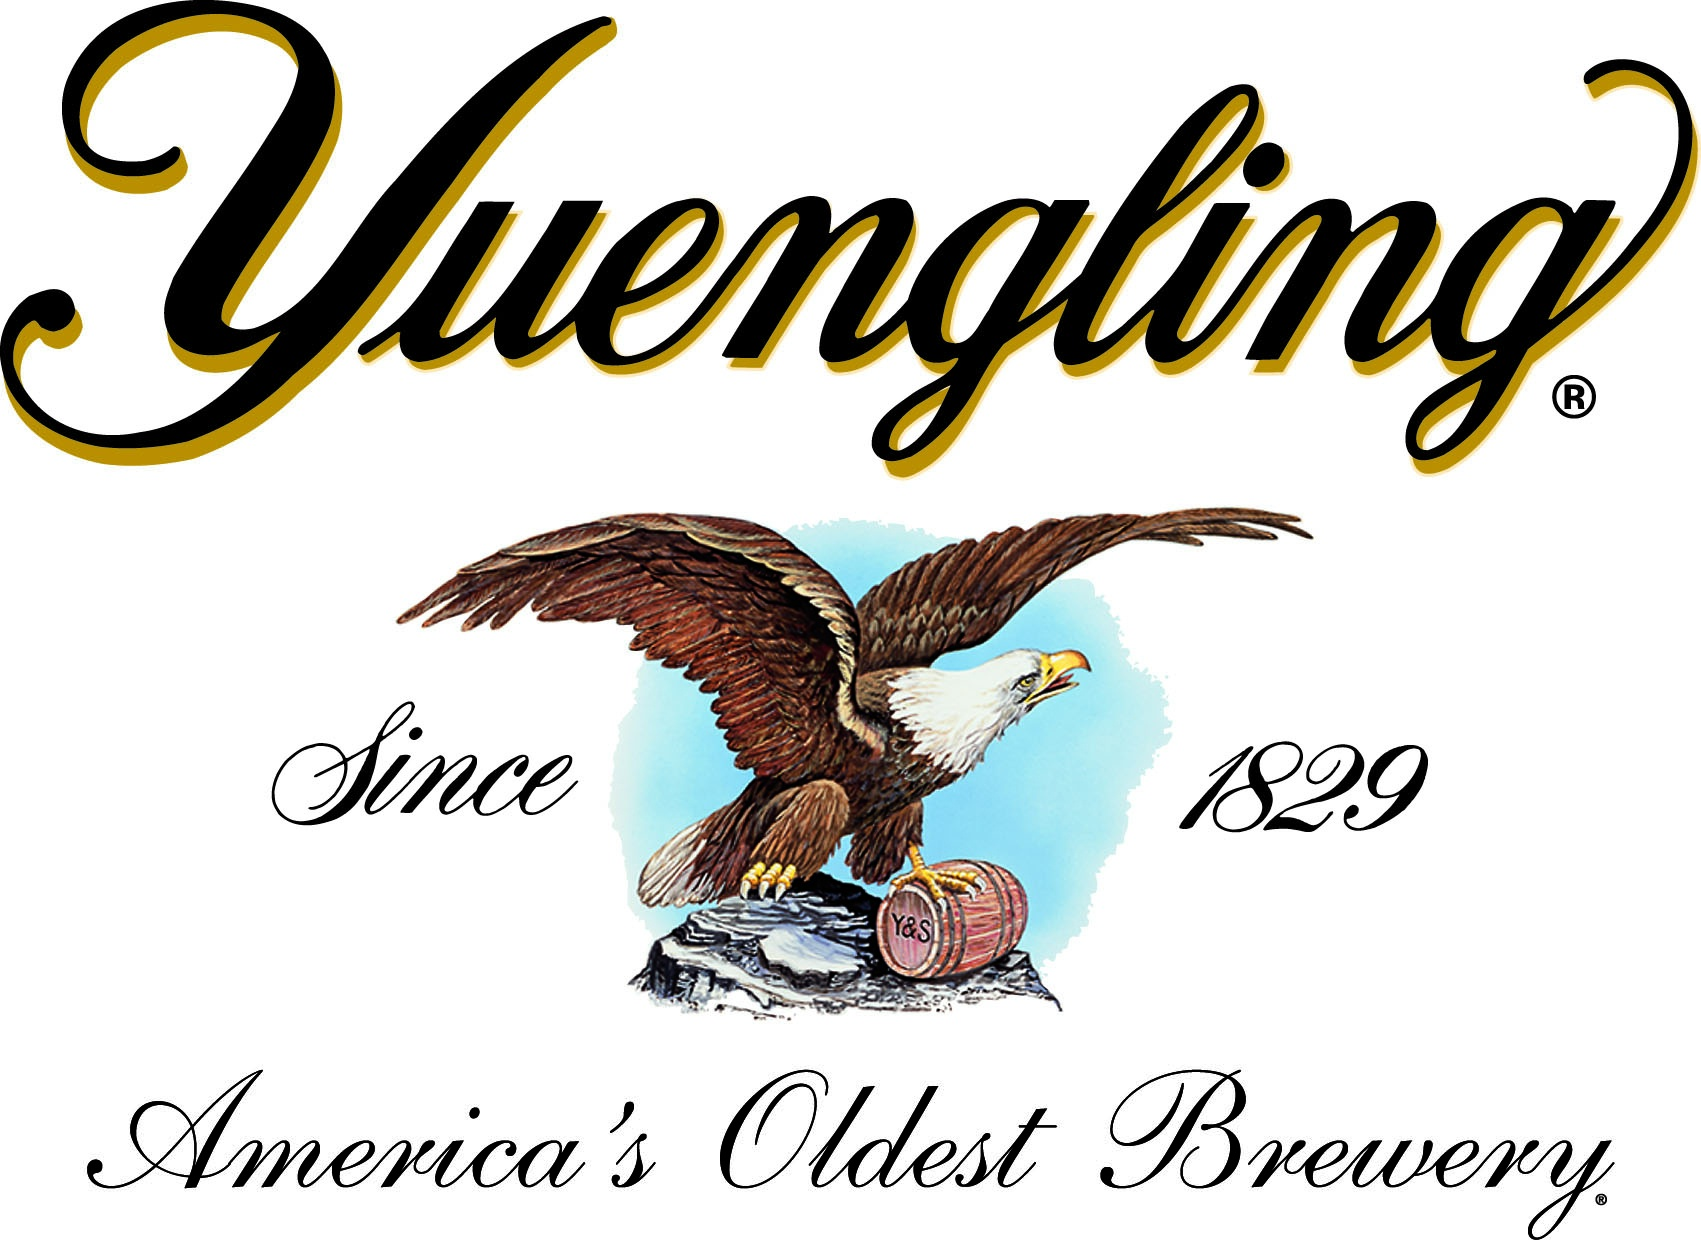 Remember when Yuengling was the enemy? If you do, please report to room 101 for debriefing.